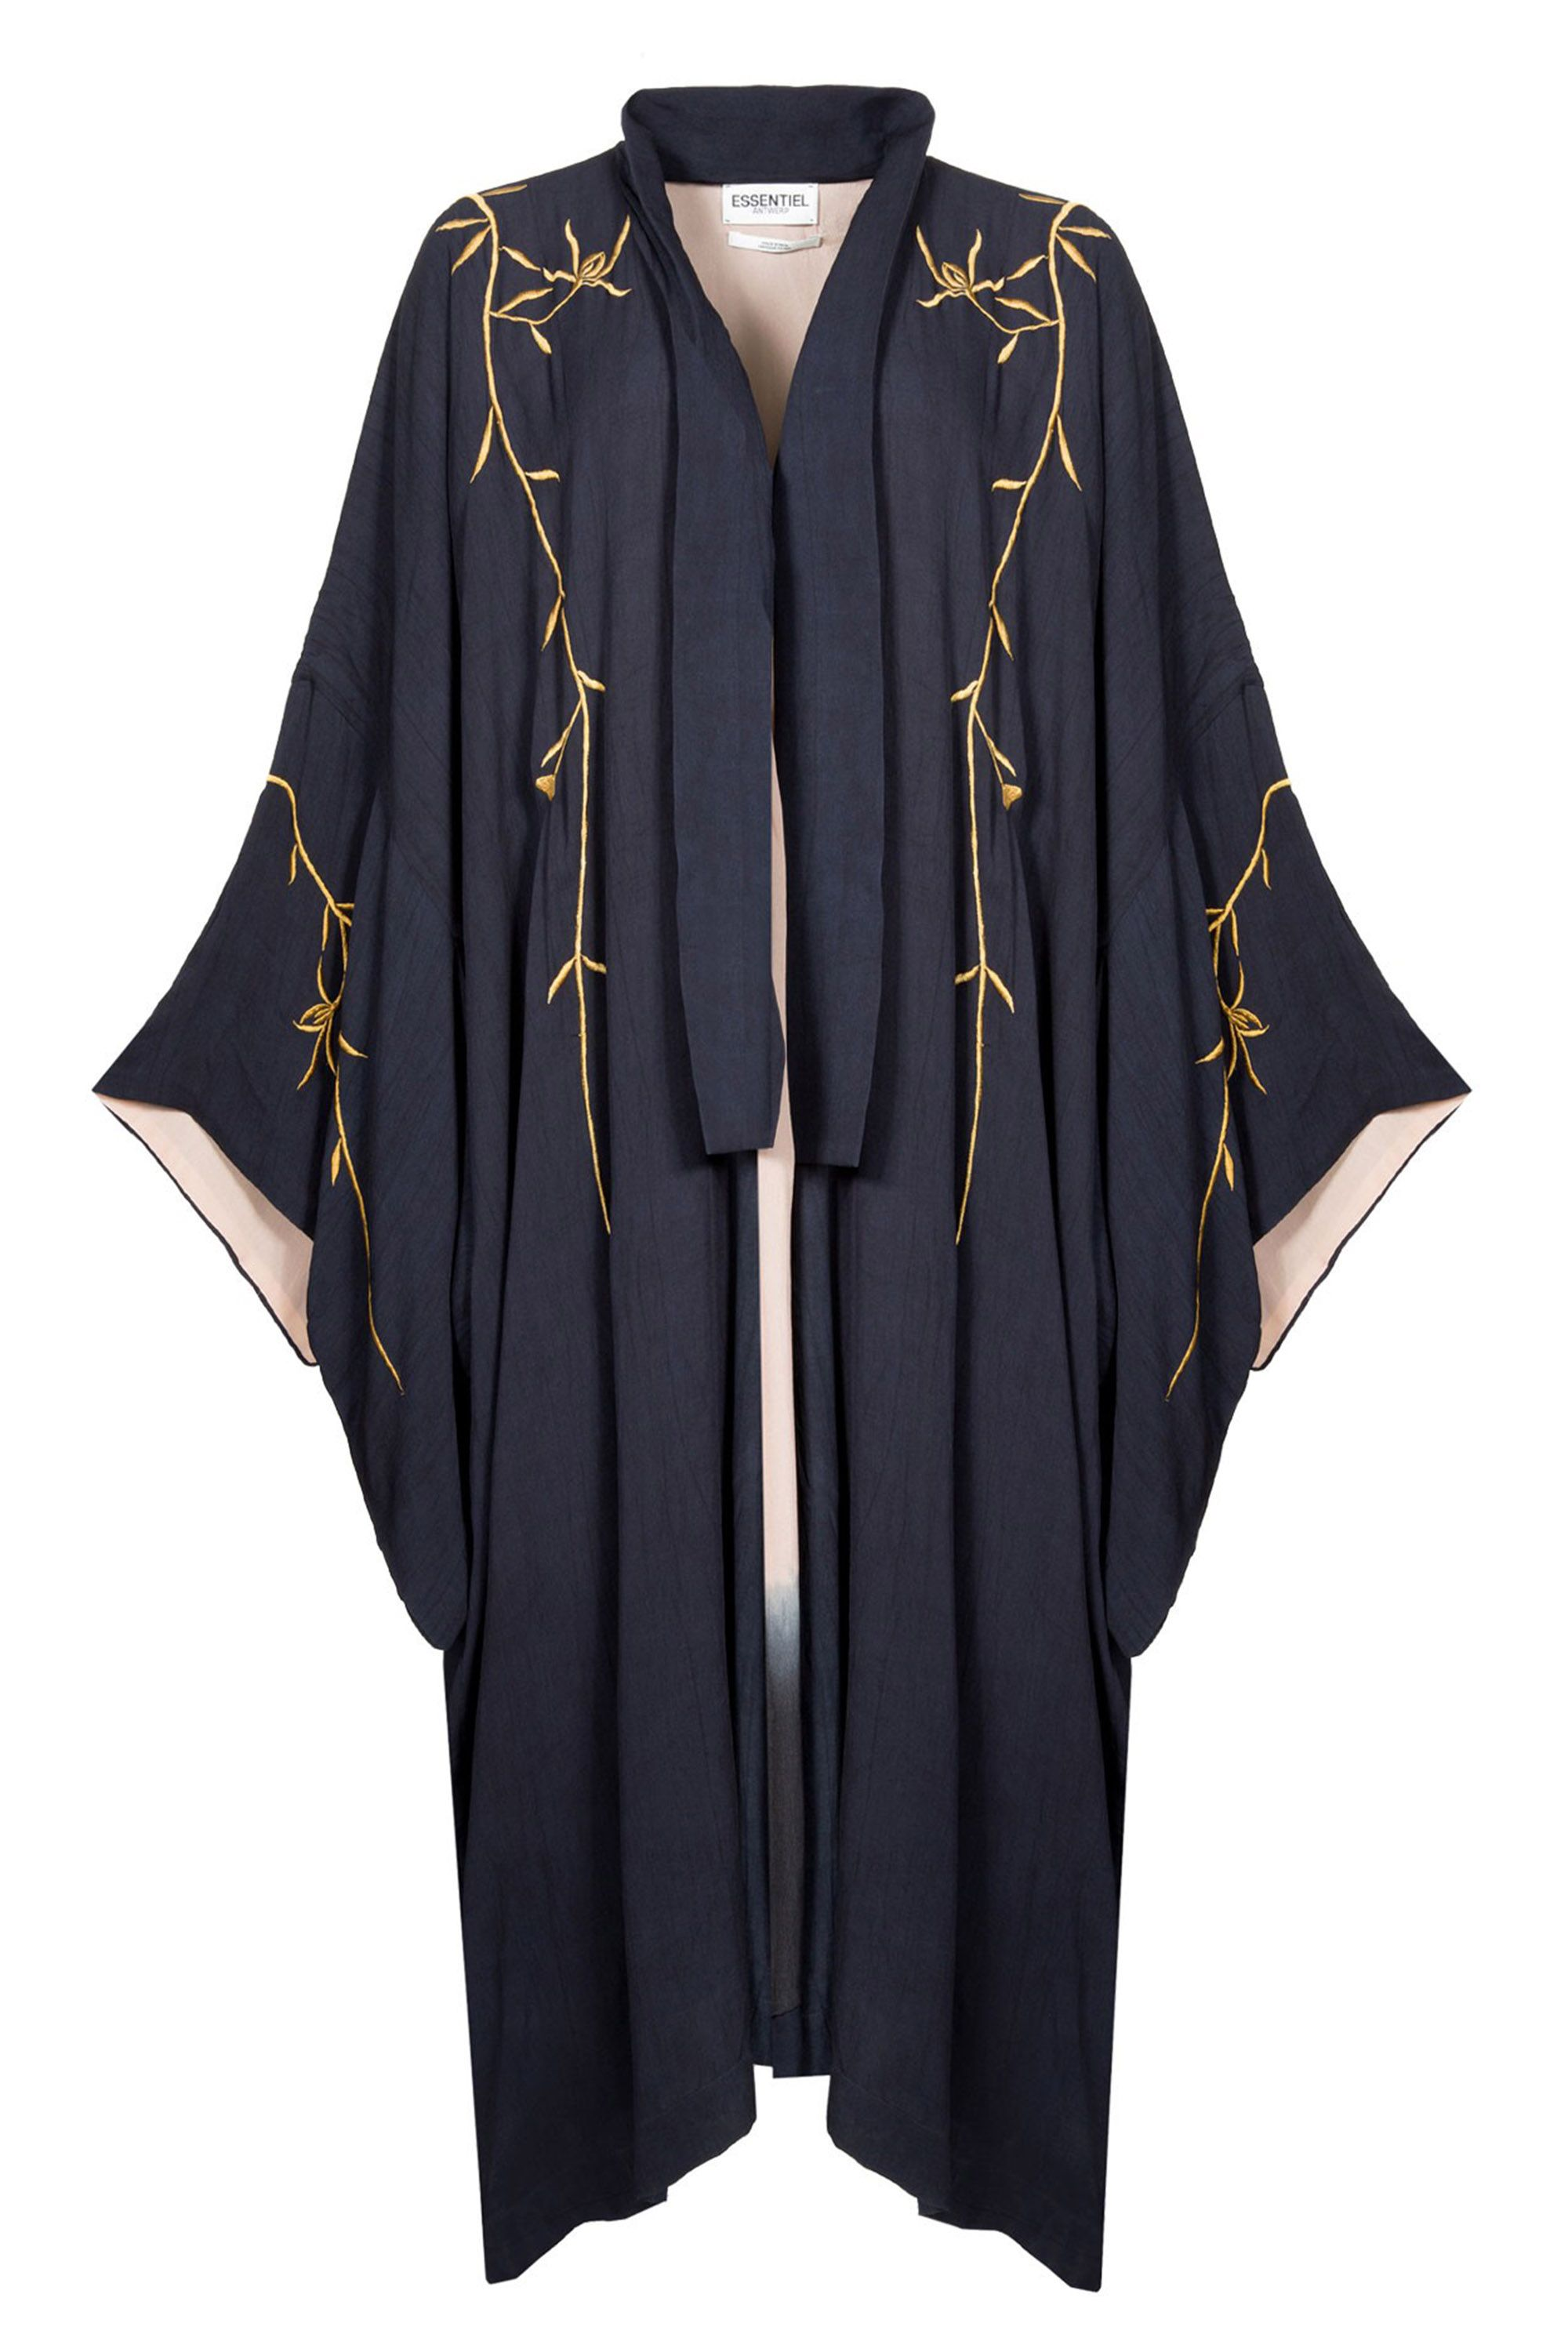 "<p>Essentiel Antwerp Gold Embroidered Kimono Moore Coat, €285; <a href=""https://www.essentiel-antwerp.com/eu/women/jackets-coats/moore-coat"" target=""_blank"">essentiel-antwerp.com</a></p>"